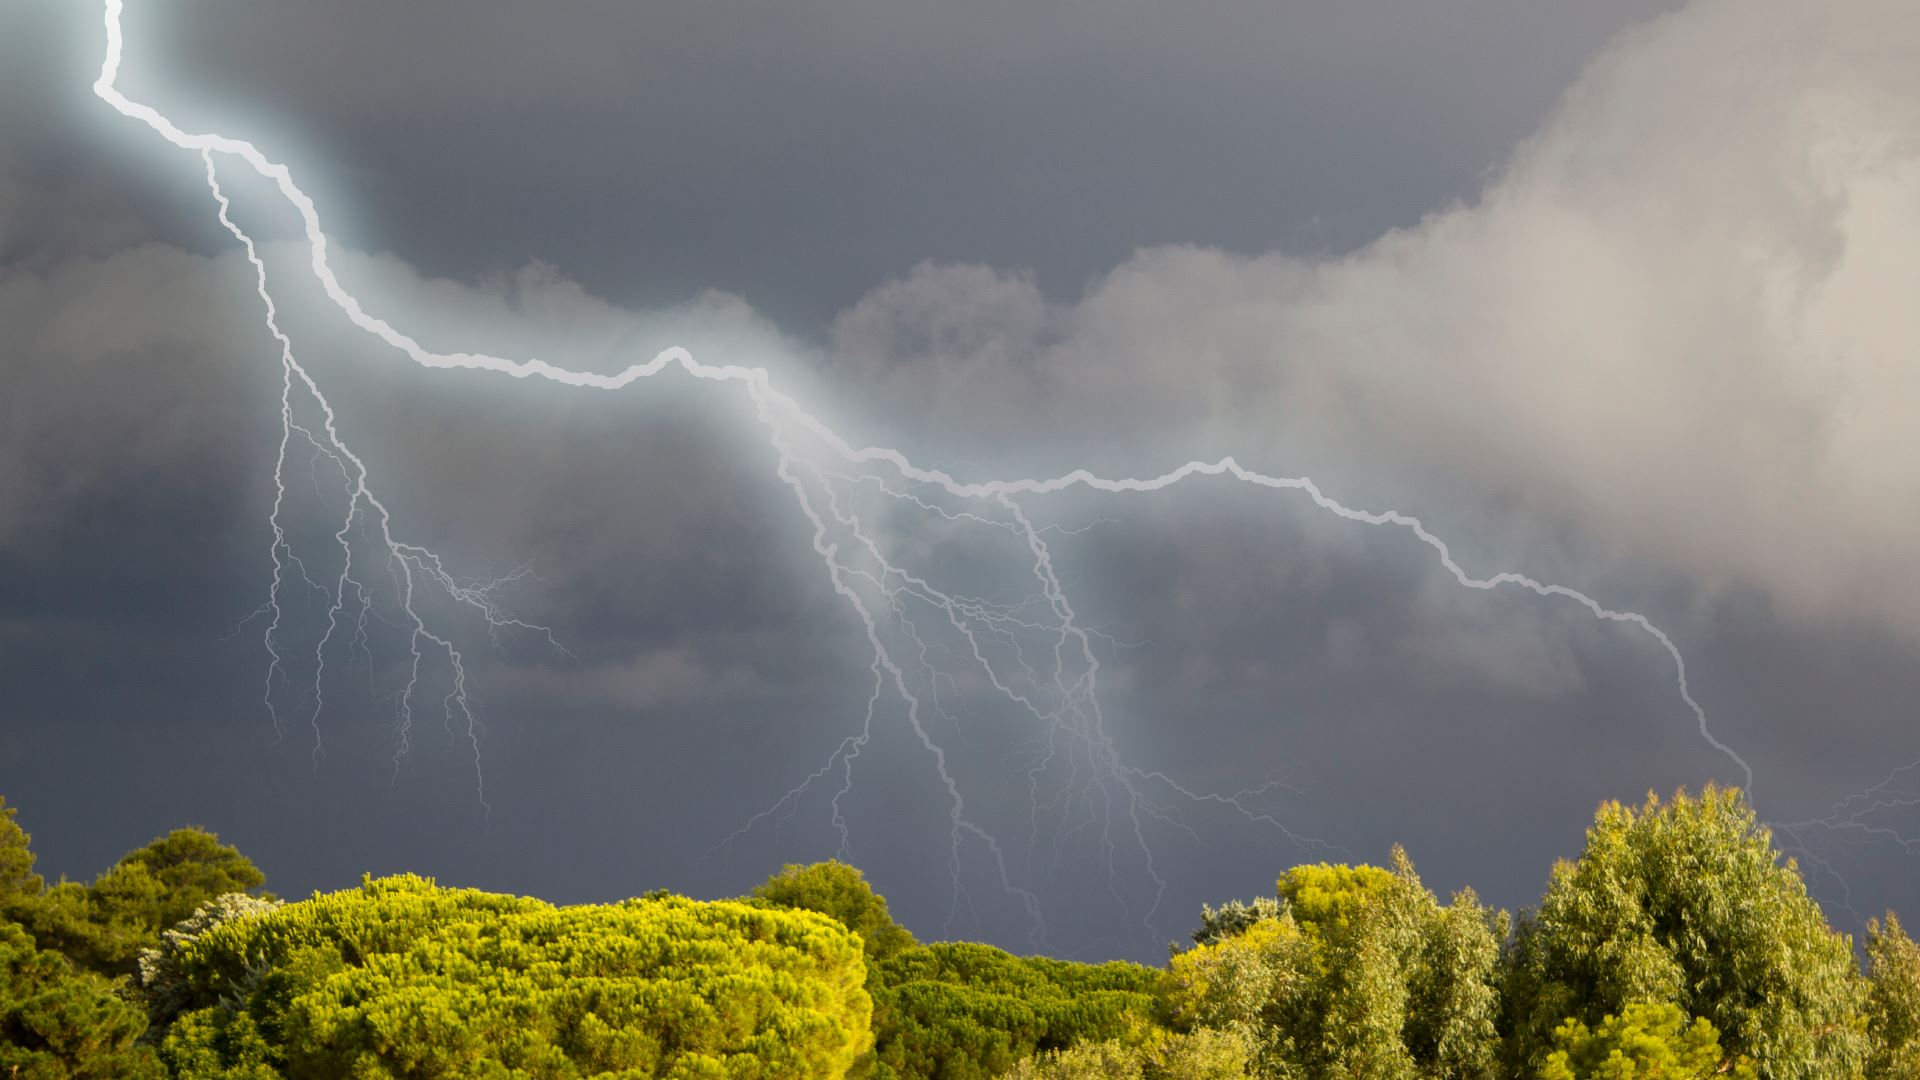 Lightning Safety - Reducing Your Risk When Shelter Isn't Available